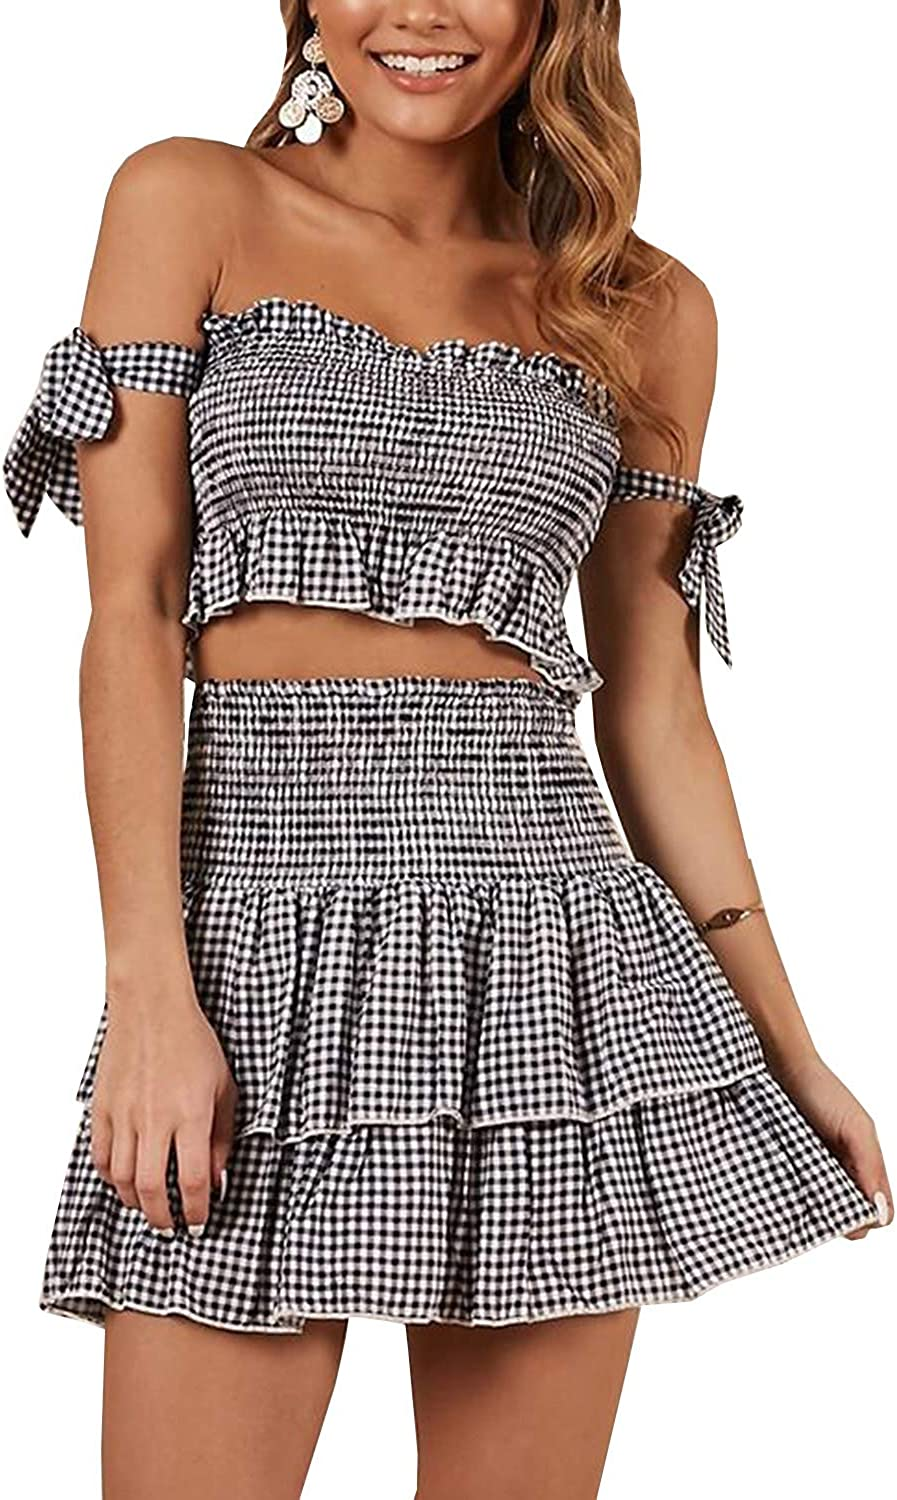 Women's Sexy Ruched Spagetti Cami Crop Top with High Waist Shirred Bodycon Skirt 2 Piece Set Outfits